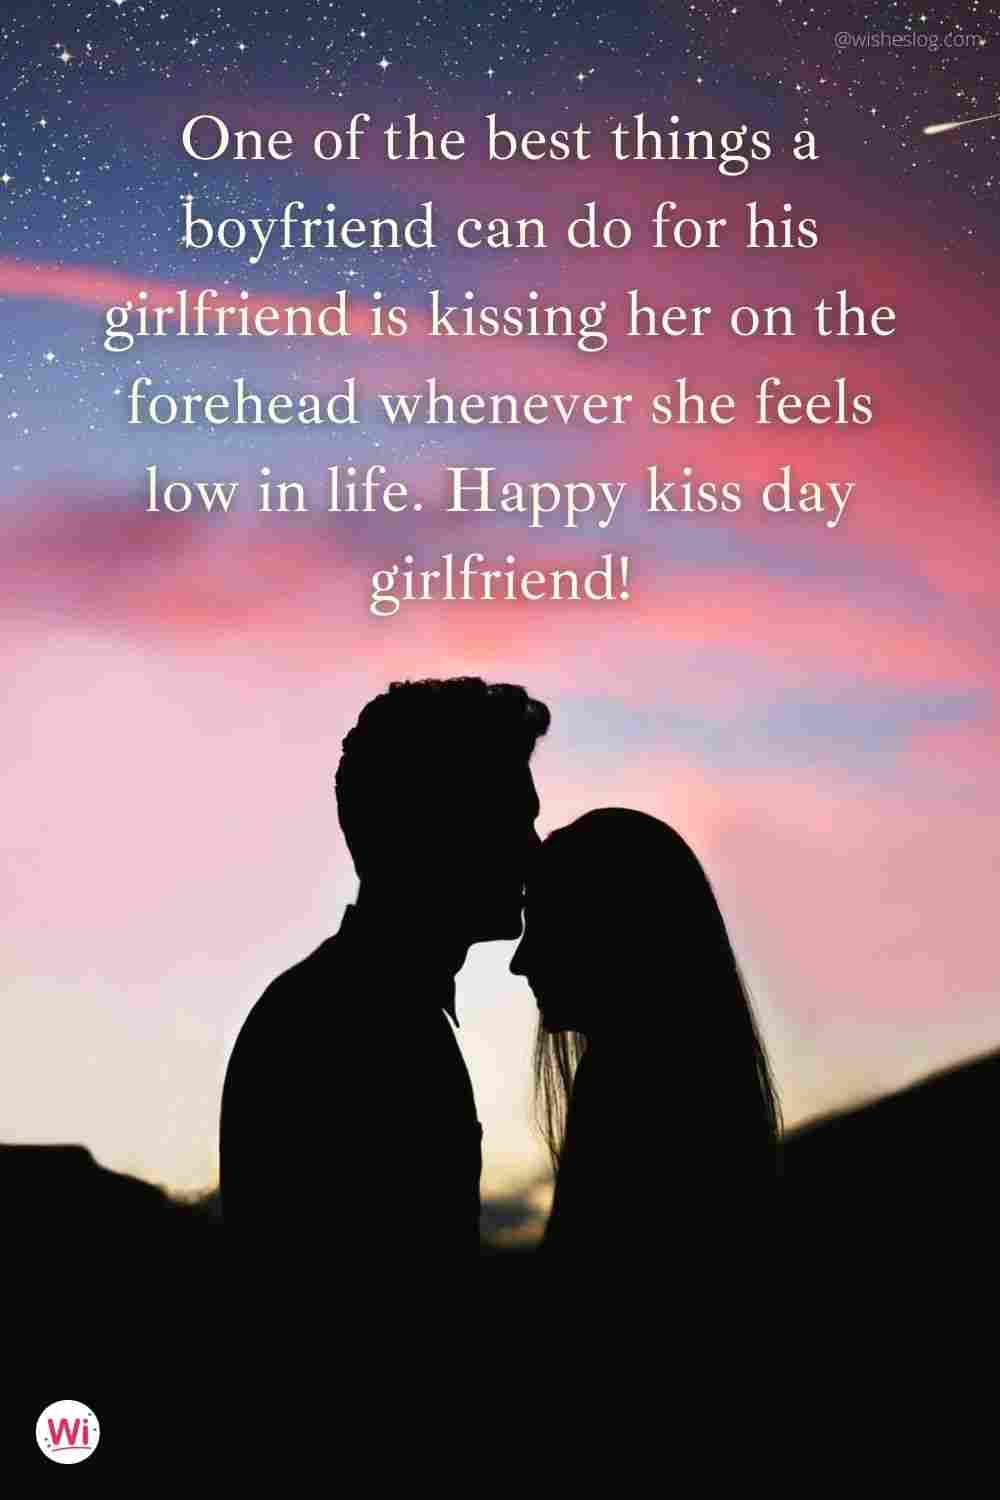 kiss day girlfriend wishes